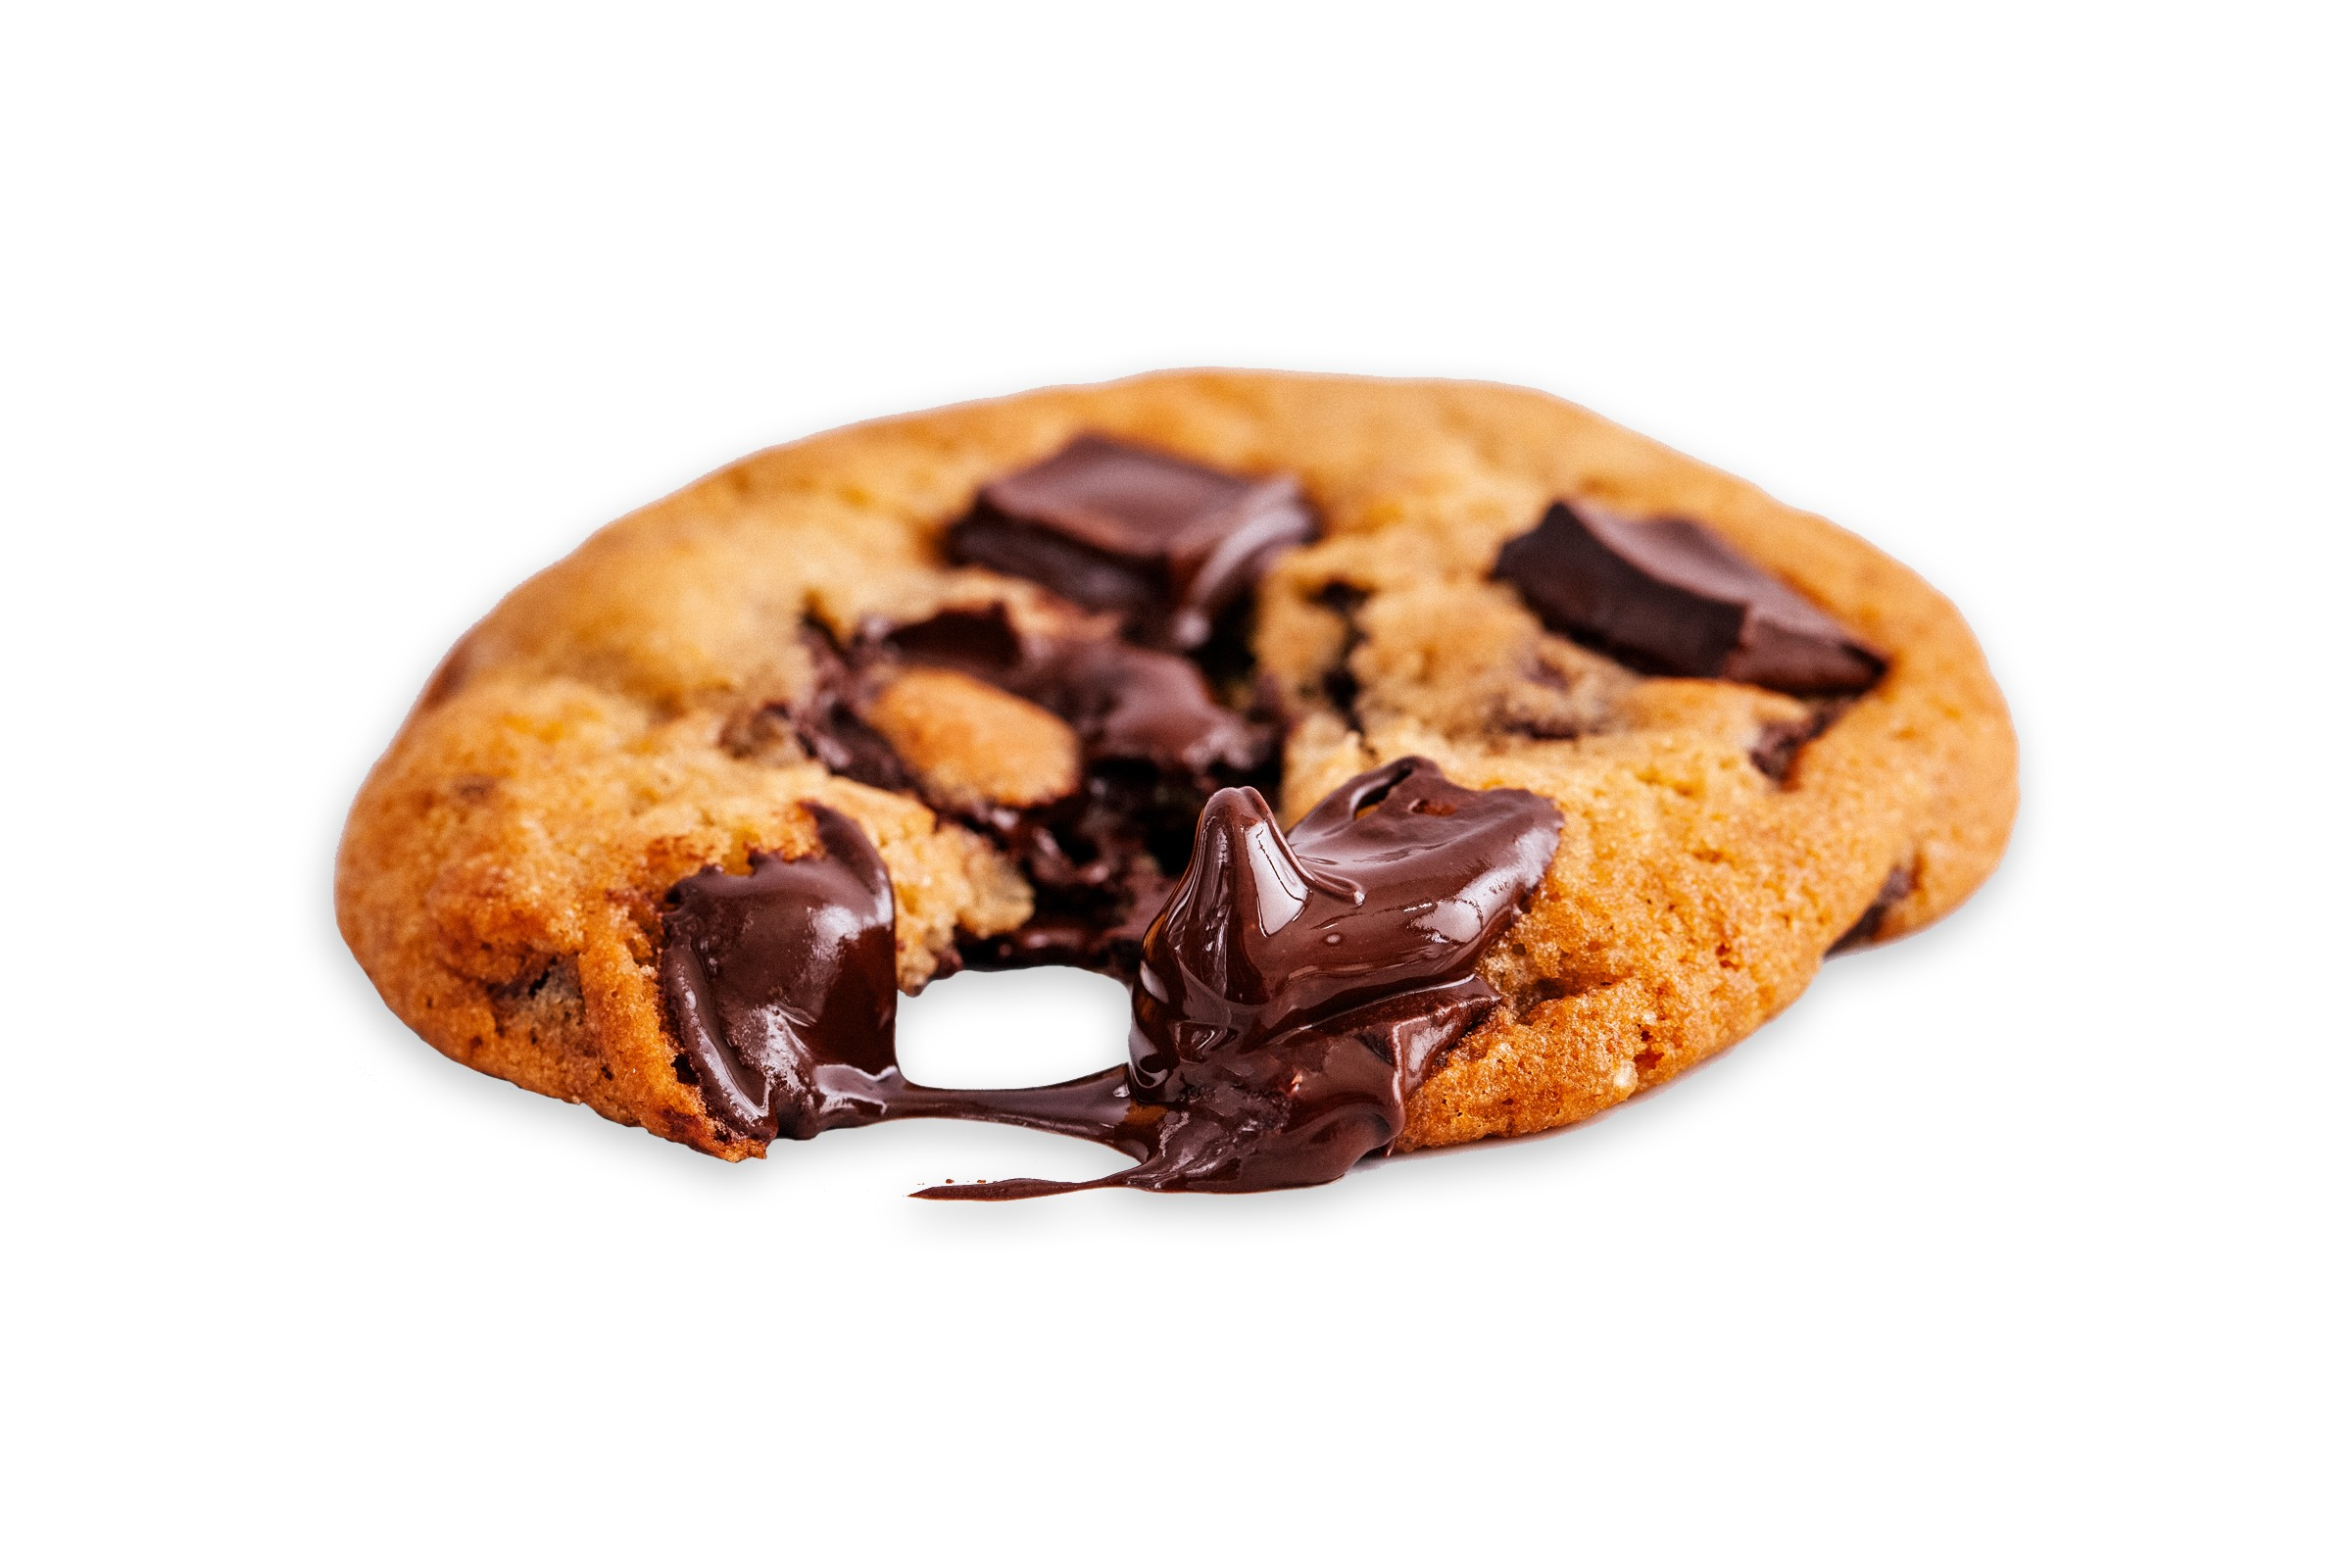 chocolate chip cookie with melting chocolate echunks